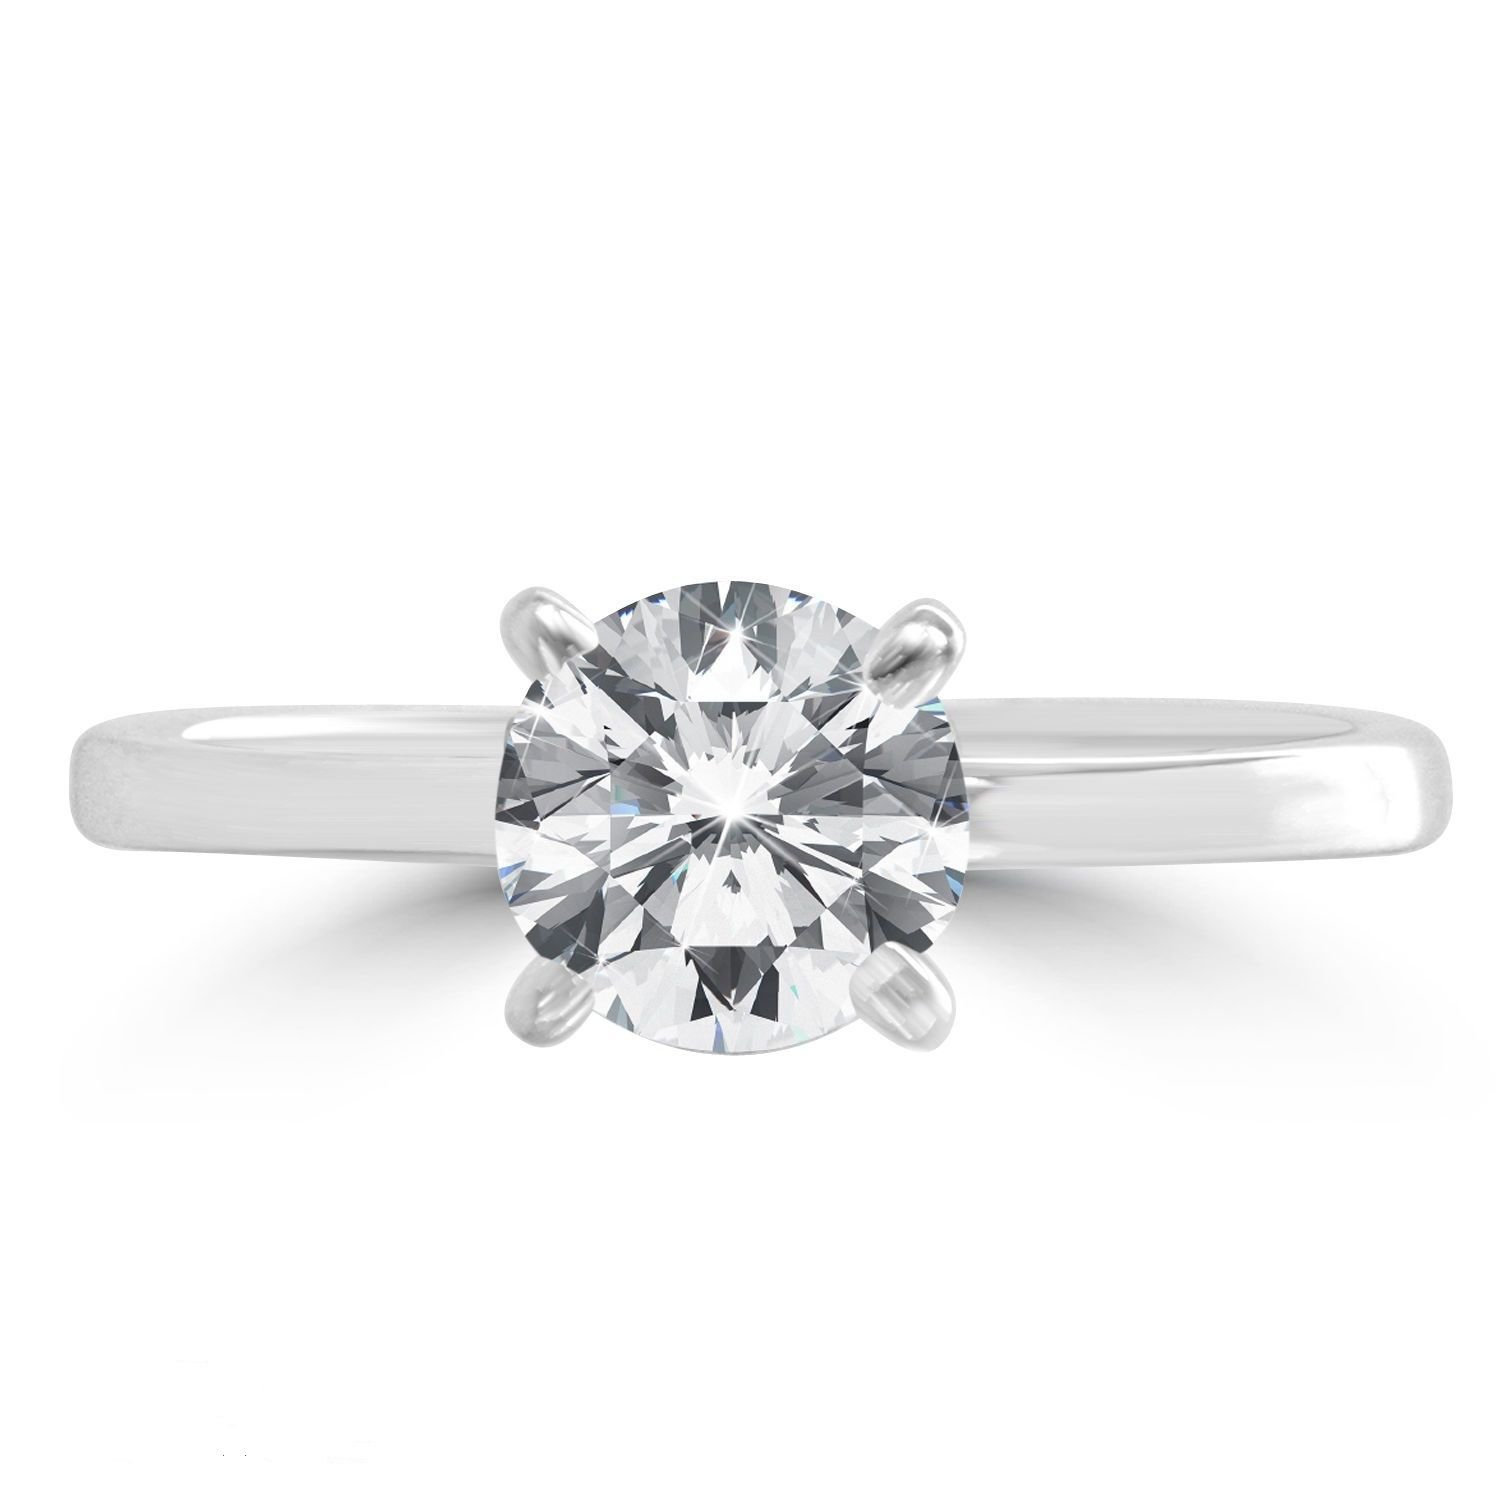 Genuine HUGE 1.55 CT Solitaire Diamond Engagement White Gold Ring